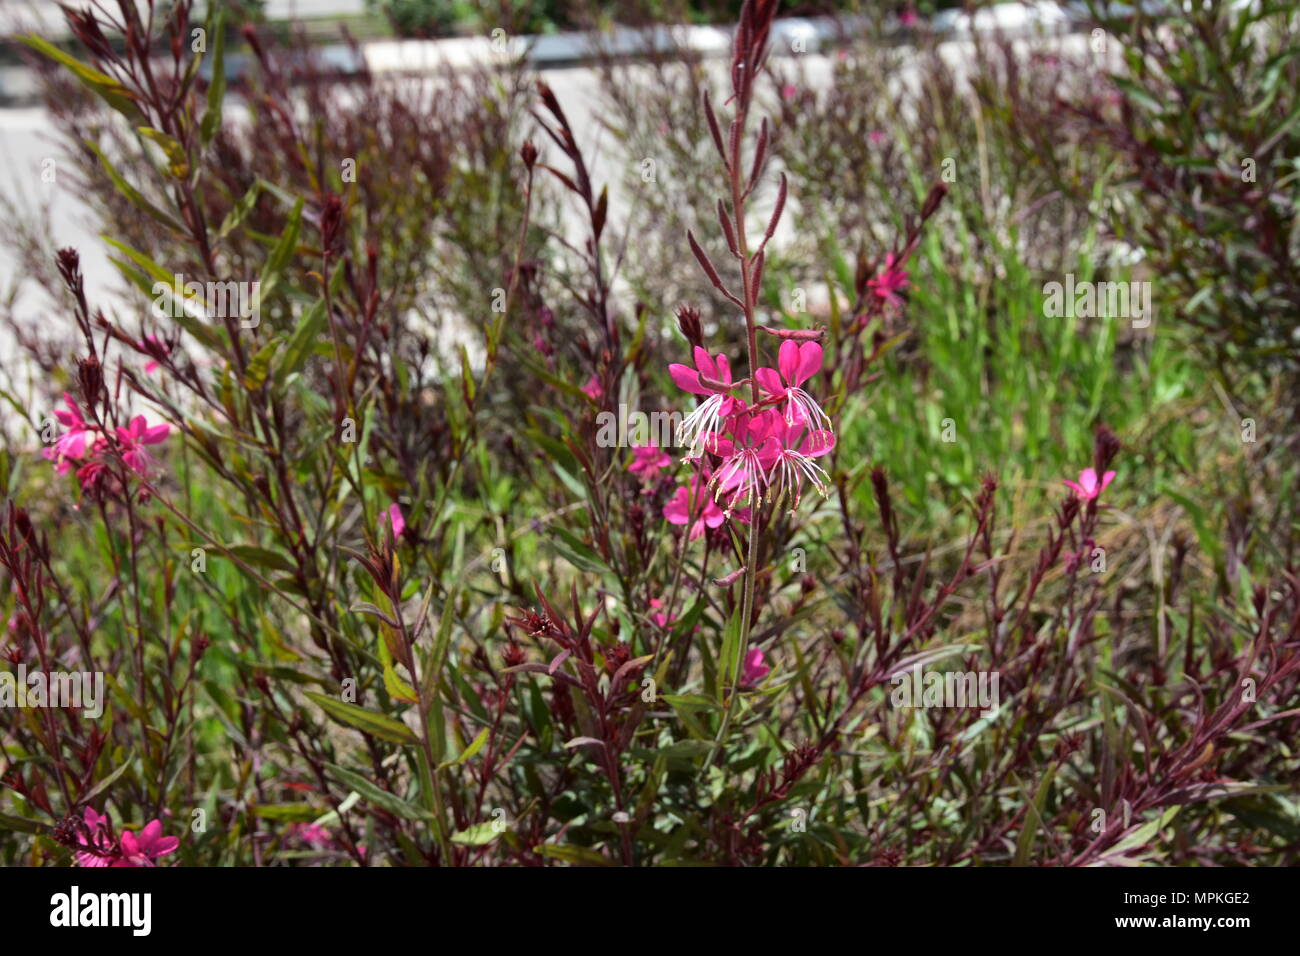 Flowering plants: Gaura. - Stock Image